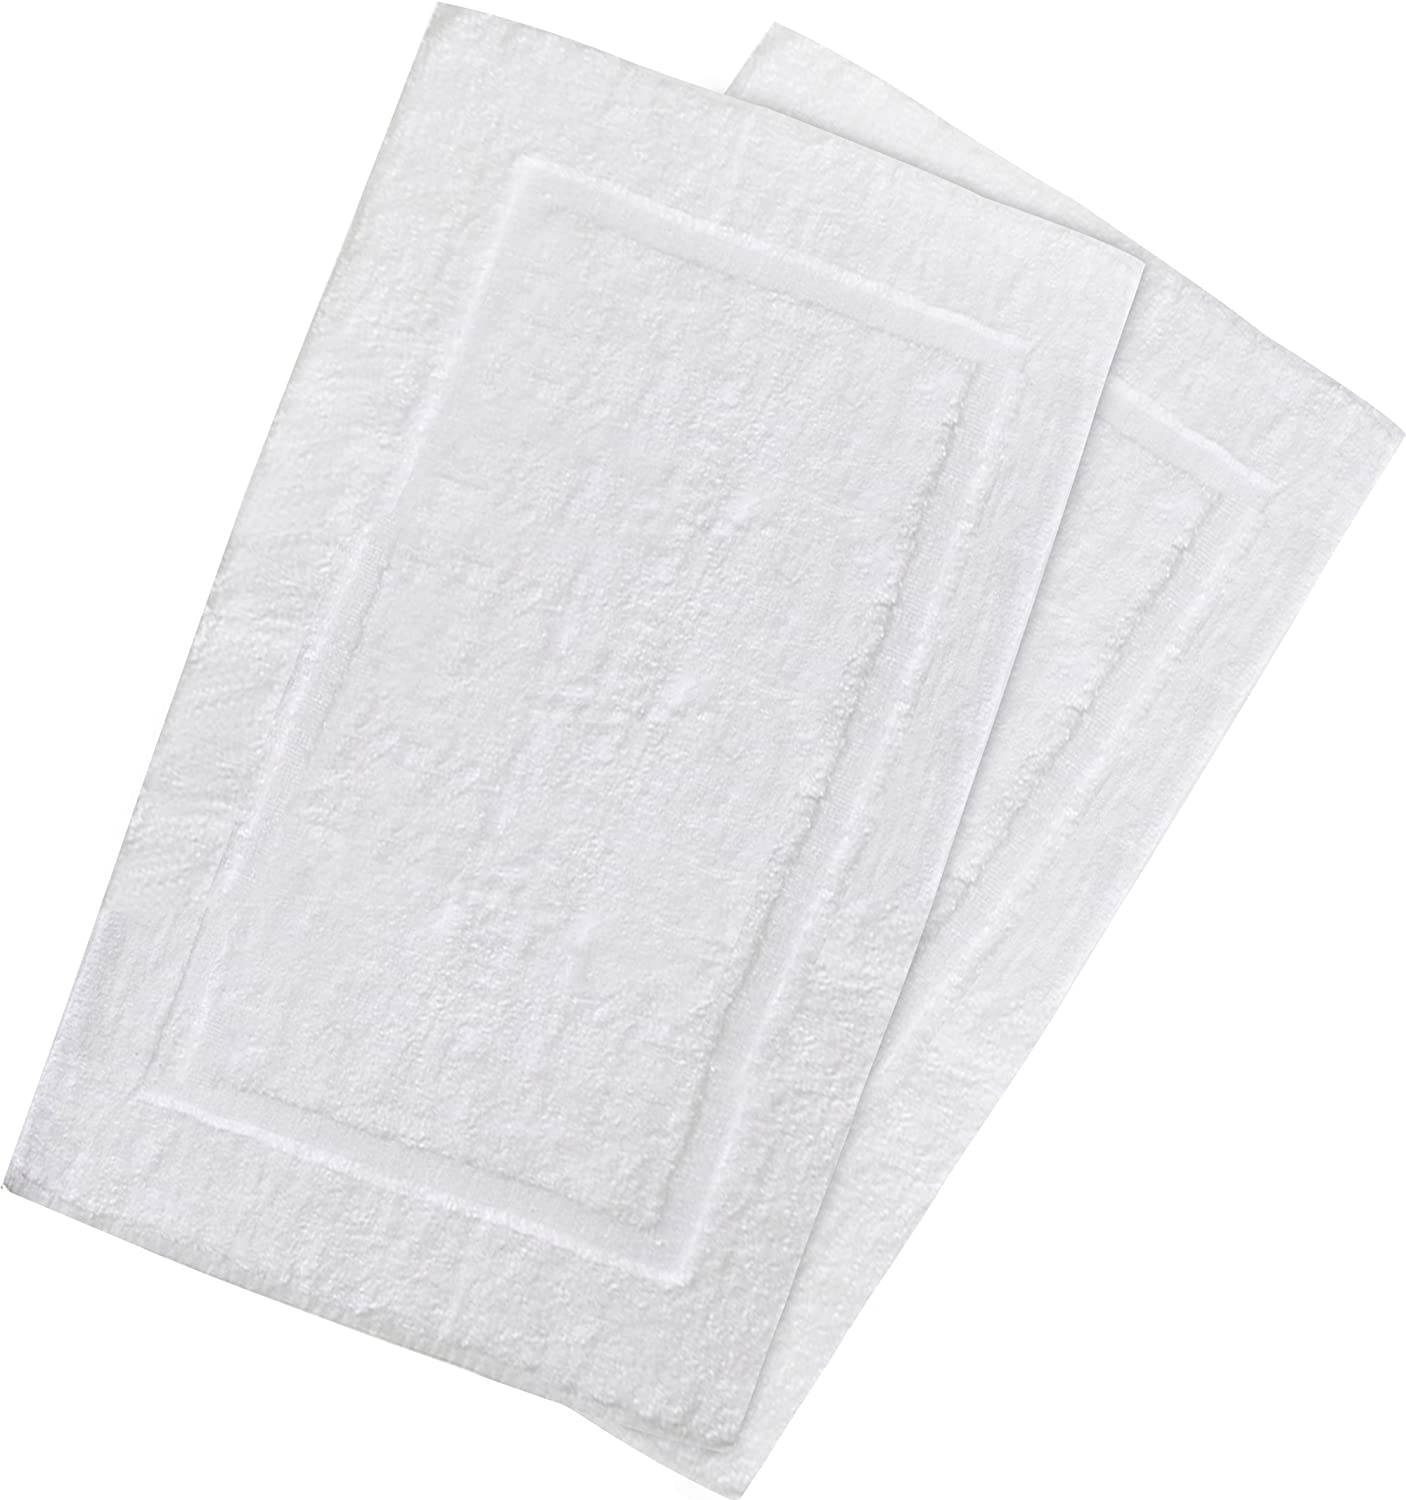 Utopia Towels 21-Inch-by-34-Inch Cotton Washable Bath Mat  2 Pack  White SYNCHKG031176